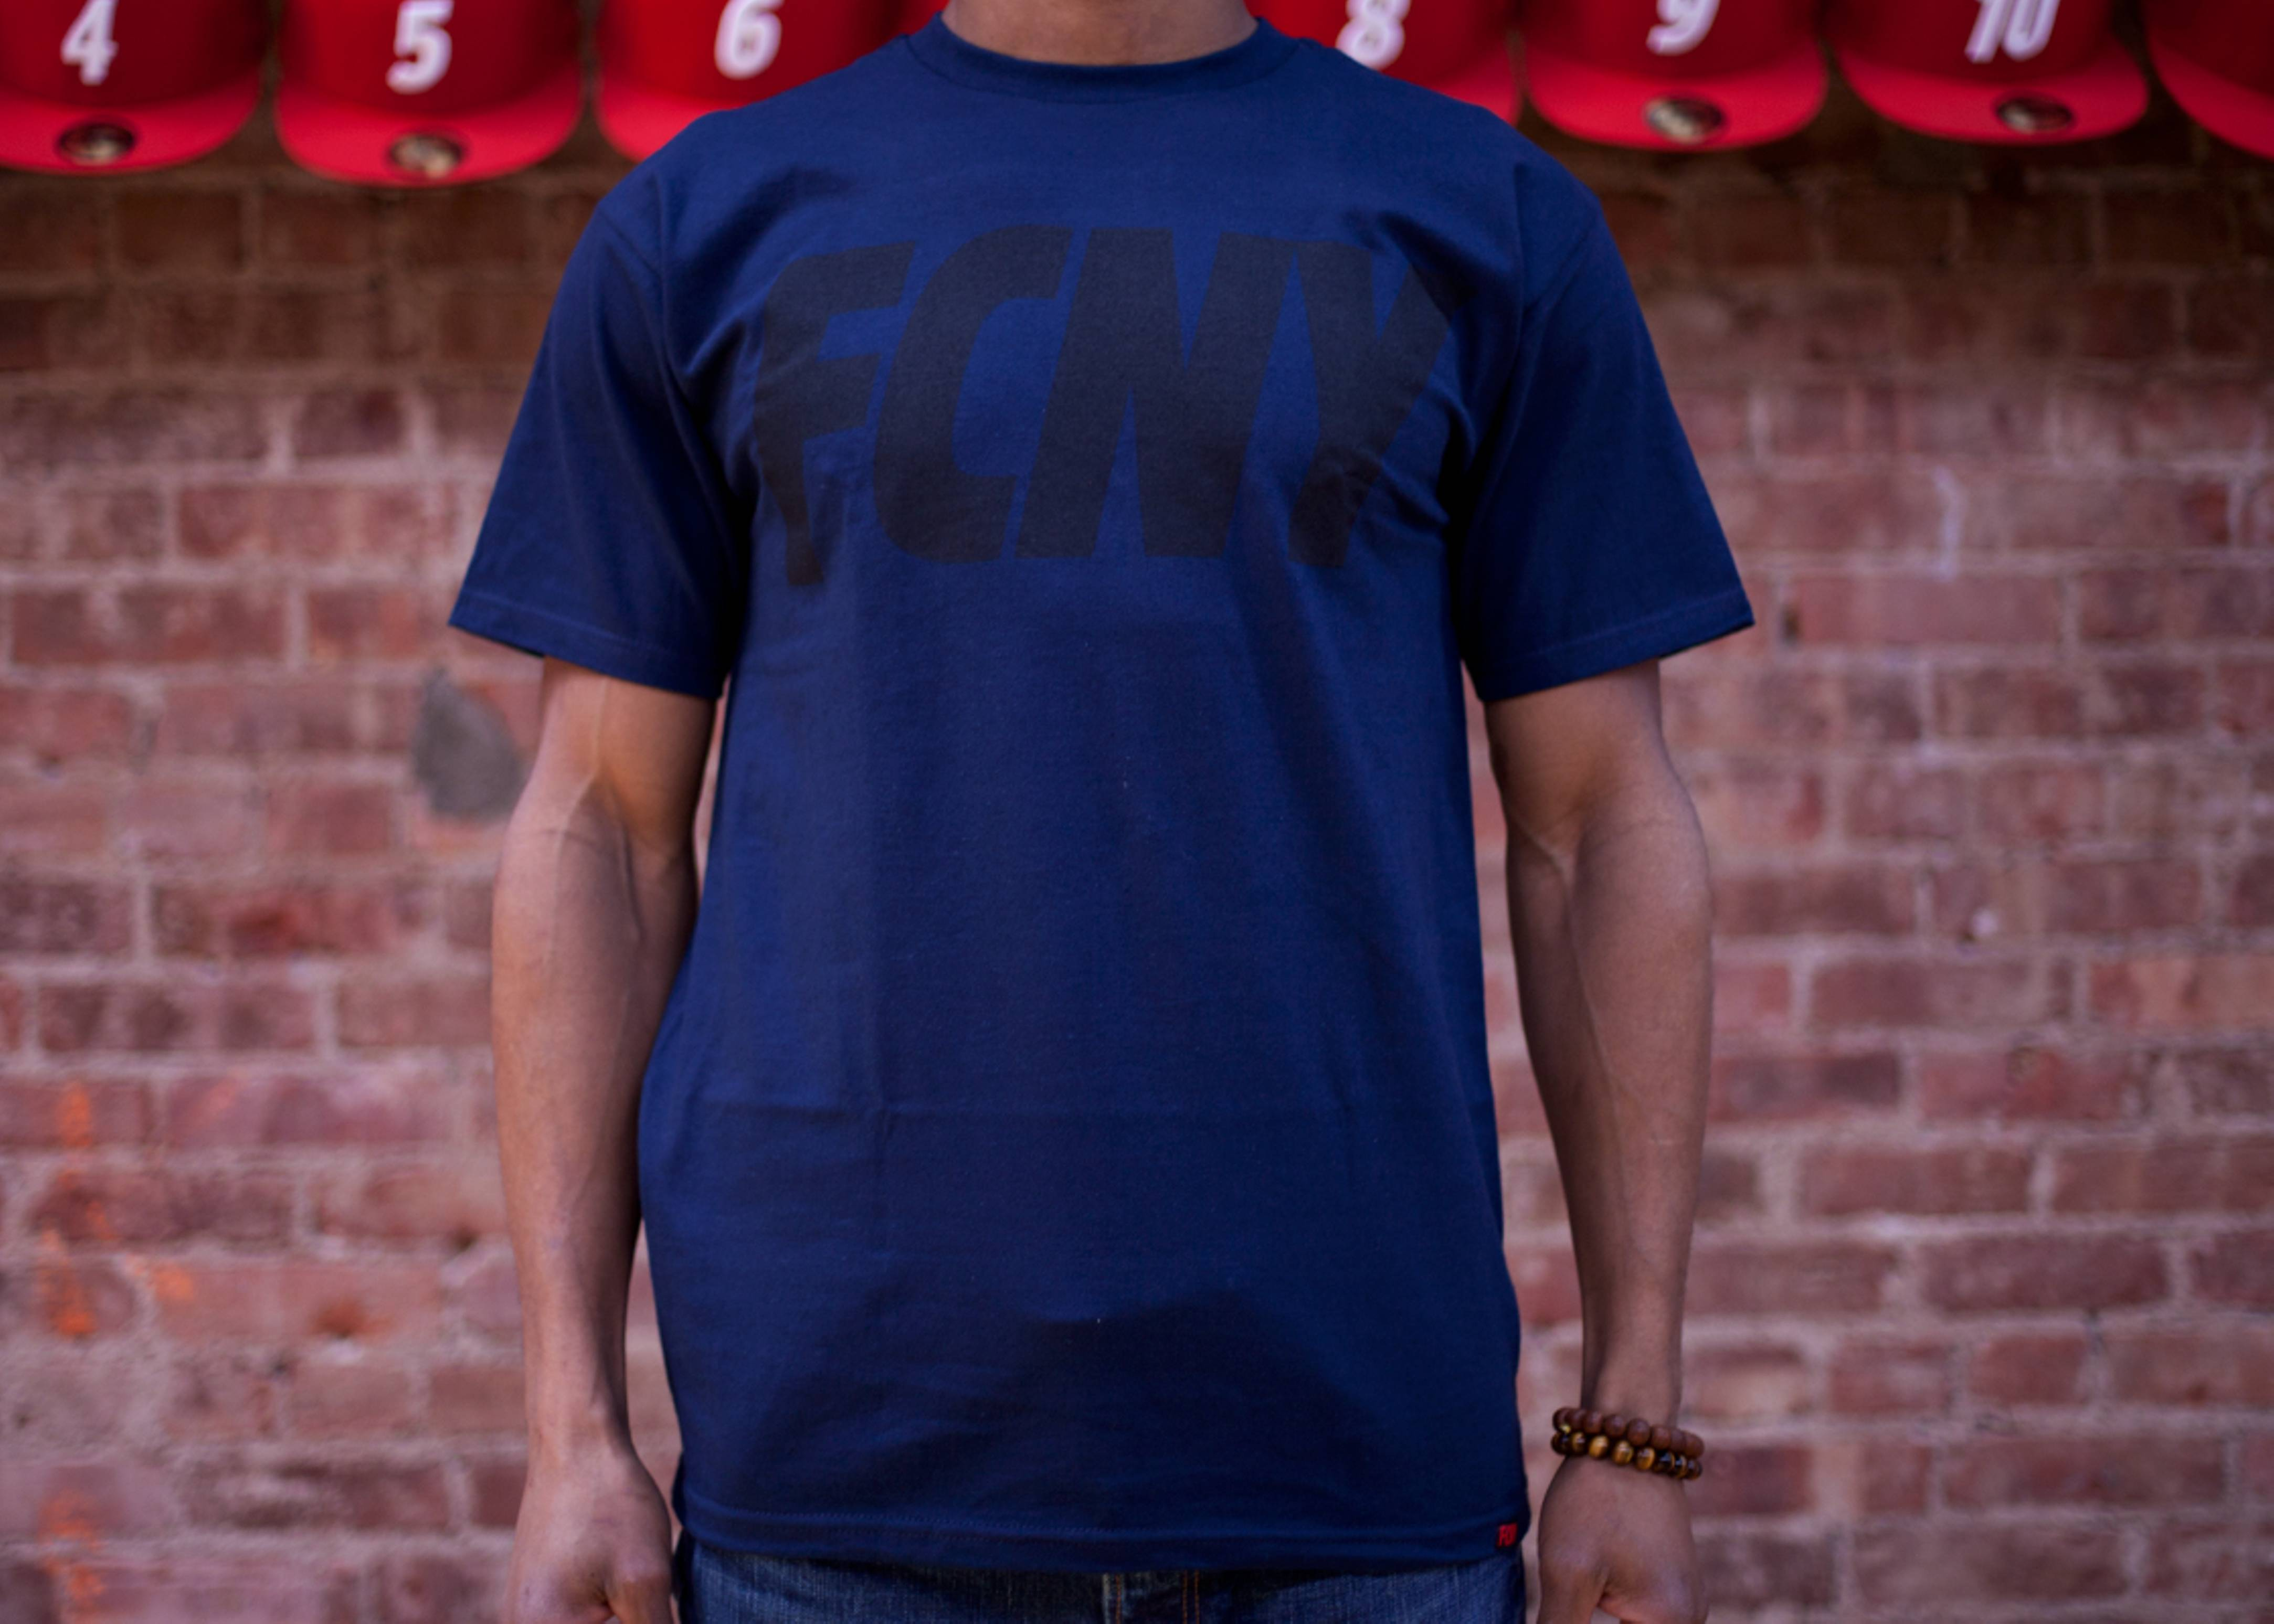 fcny slant short sleeve t-shirt